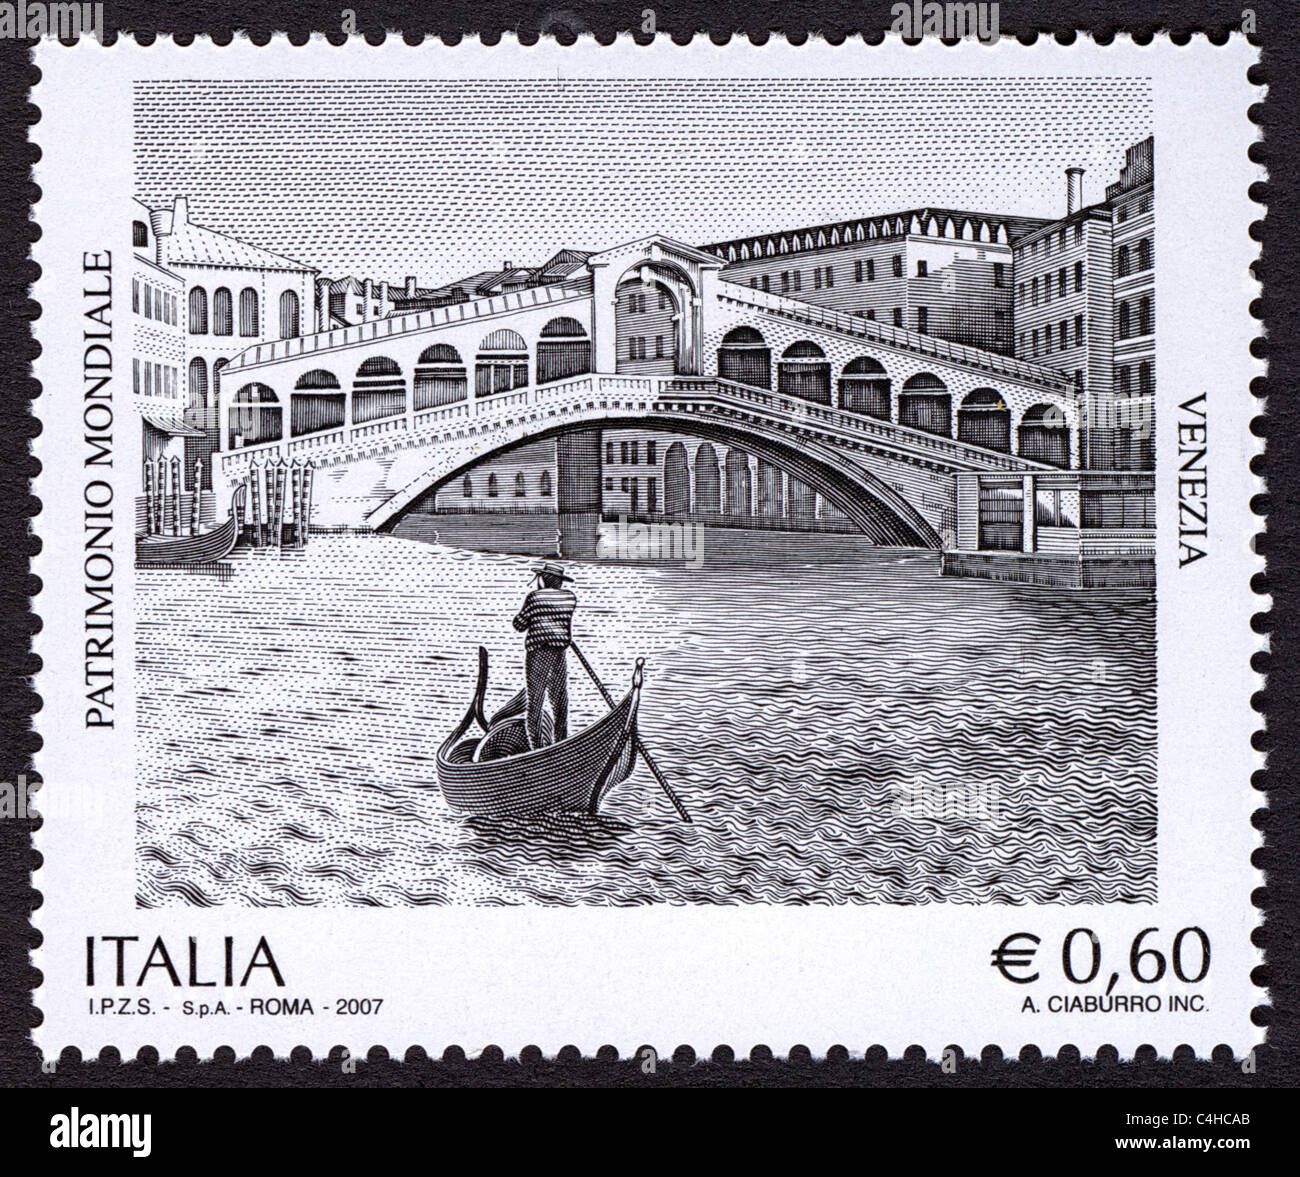 Issue of the Italian post office for the World Heritage Series. - Stock Image